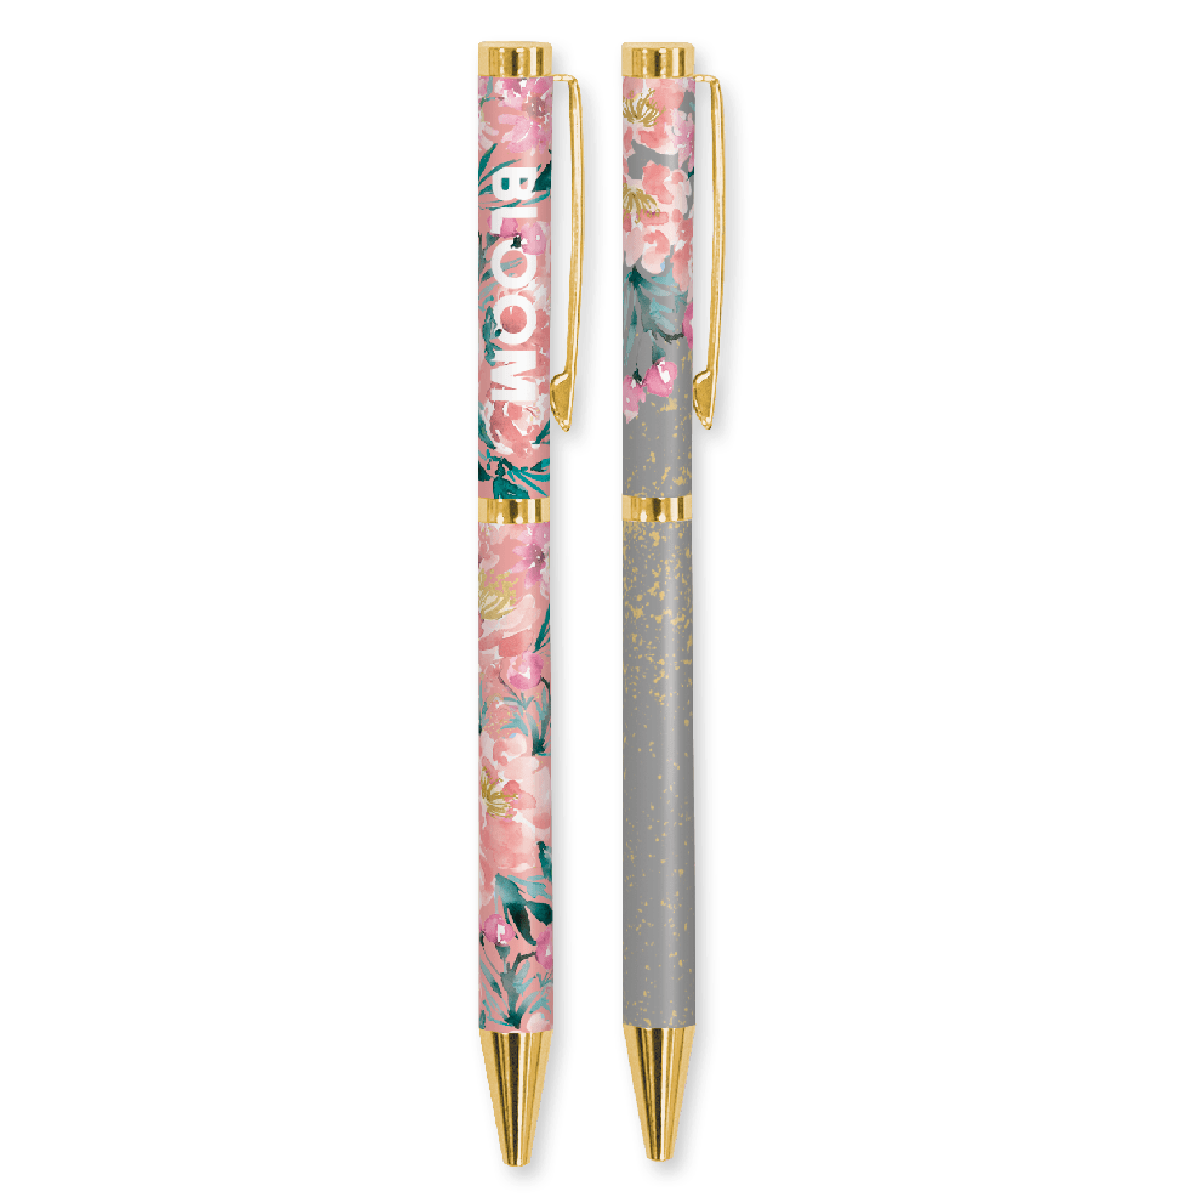 Bloom - Boxed Pen Set of 2 - The Dallas Gordon Collection